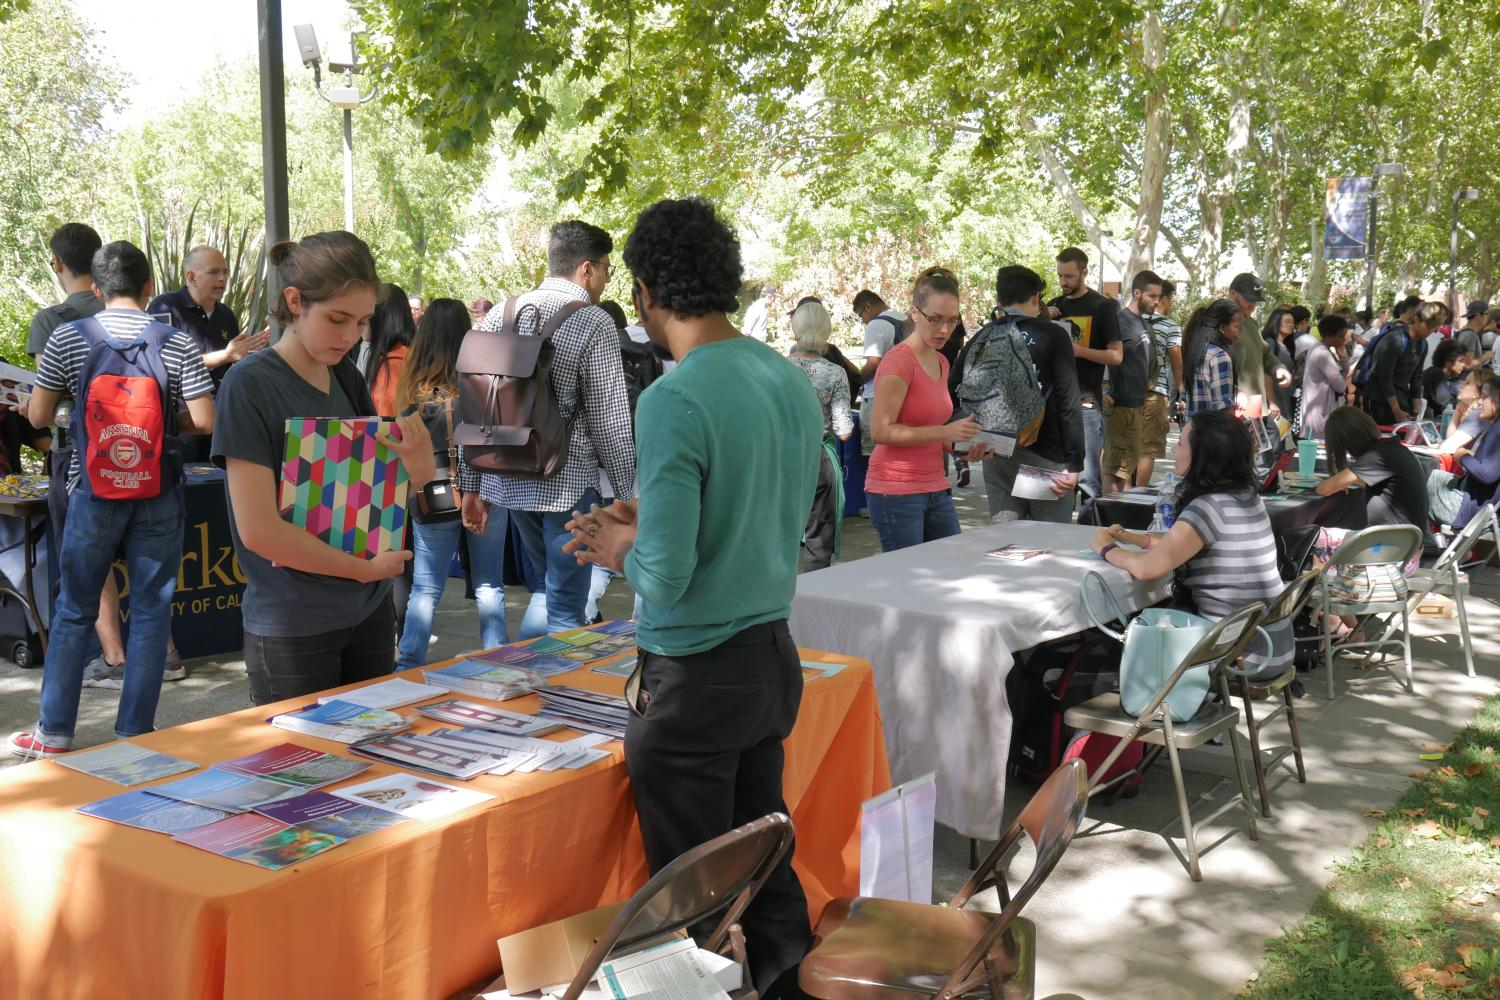 Transfer Day gives students the chance to find out more about surrounding colleges, as well as out of state.